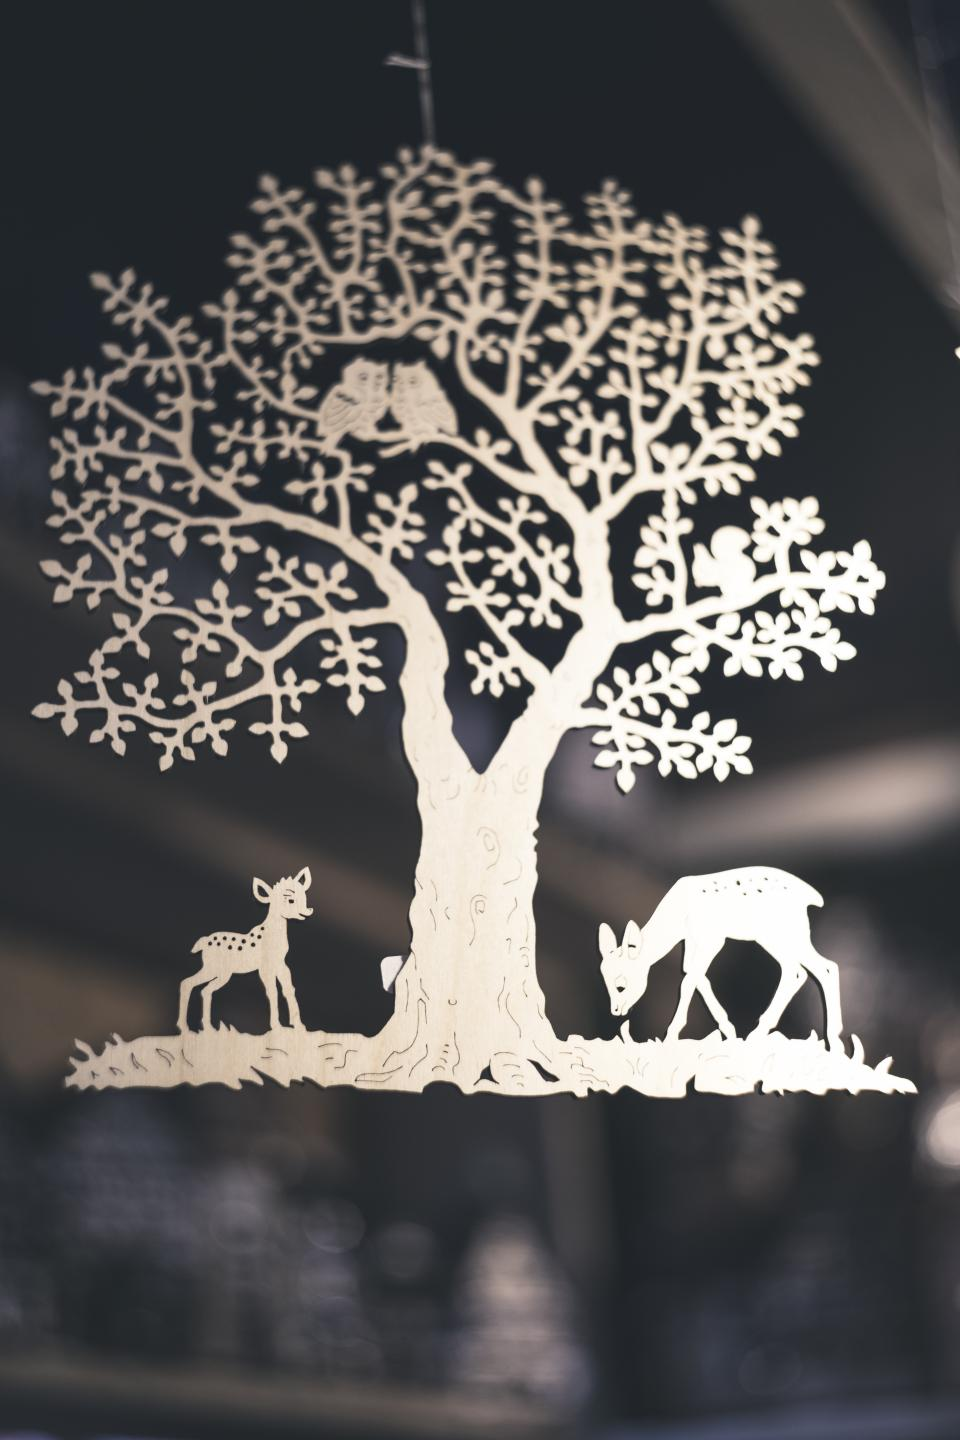 animal tree nature bird deer sticker art blur room